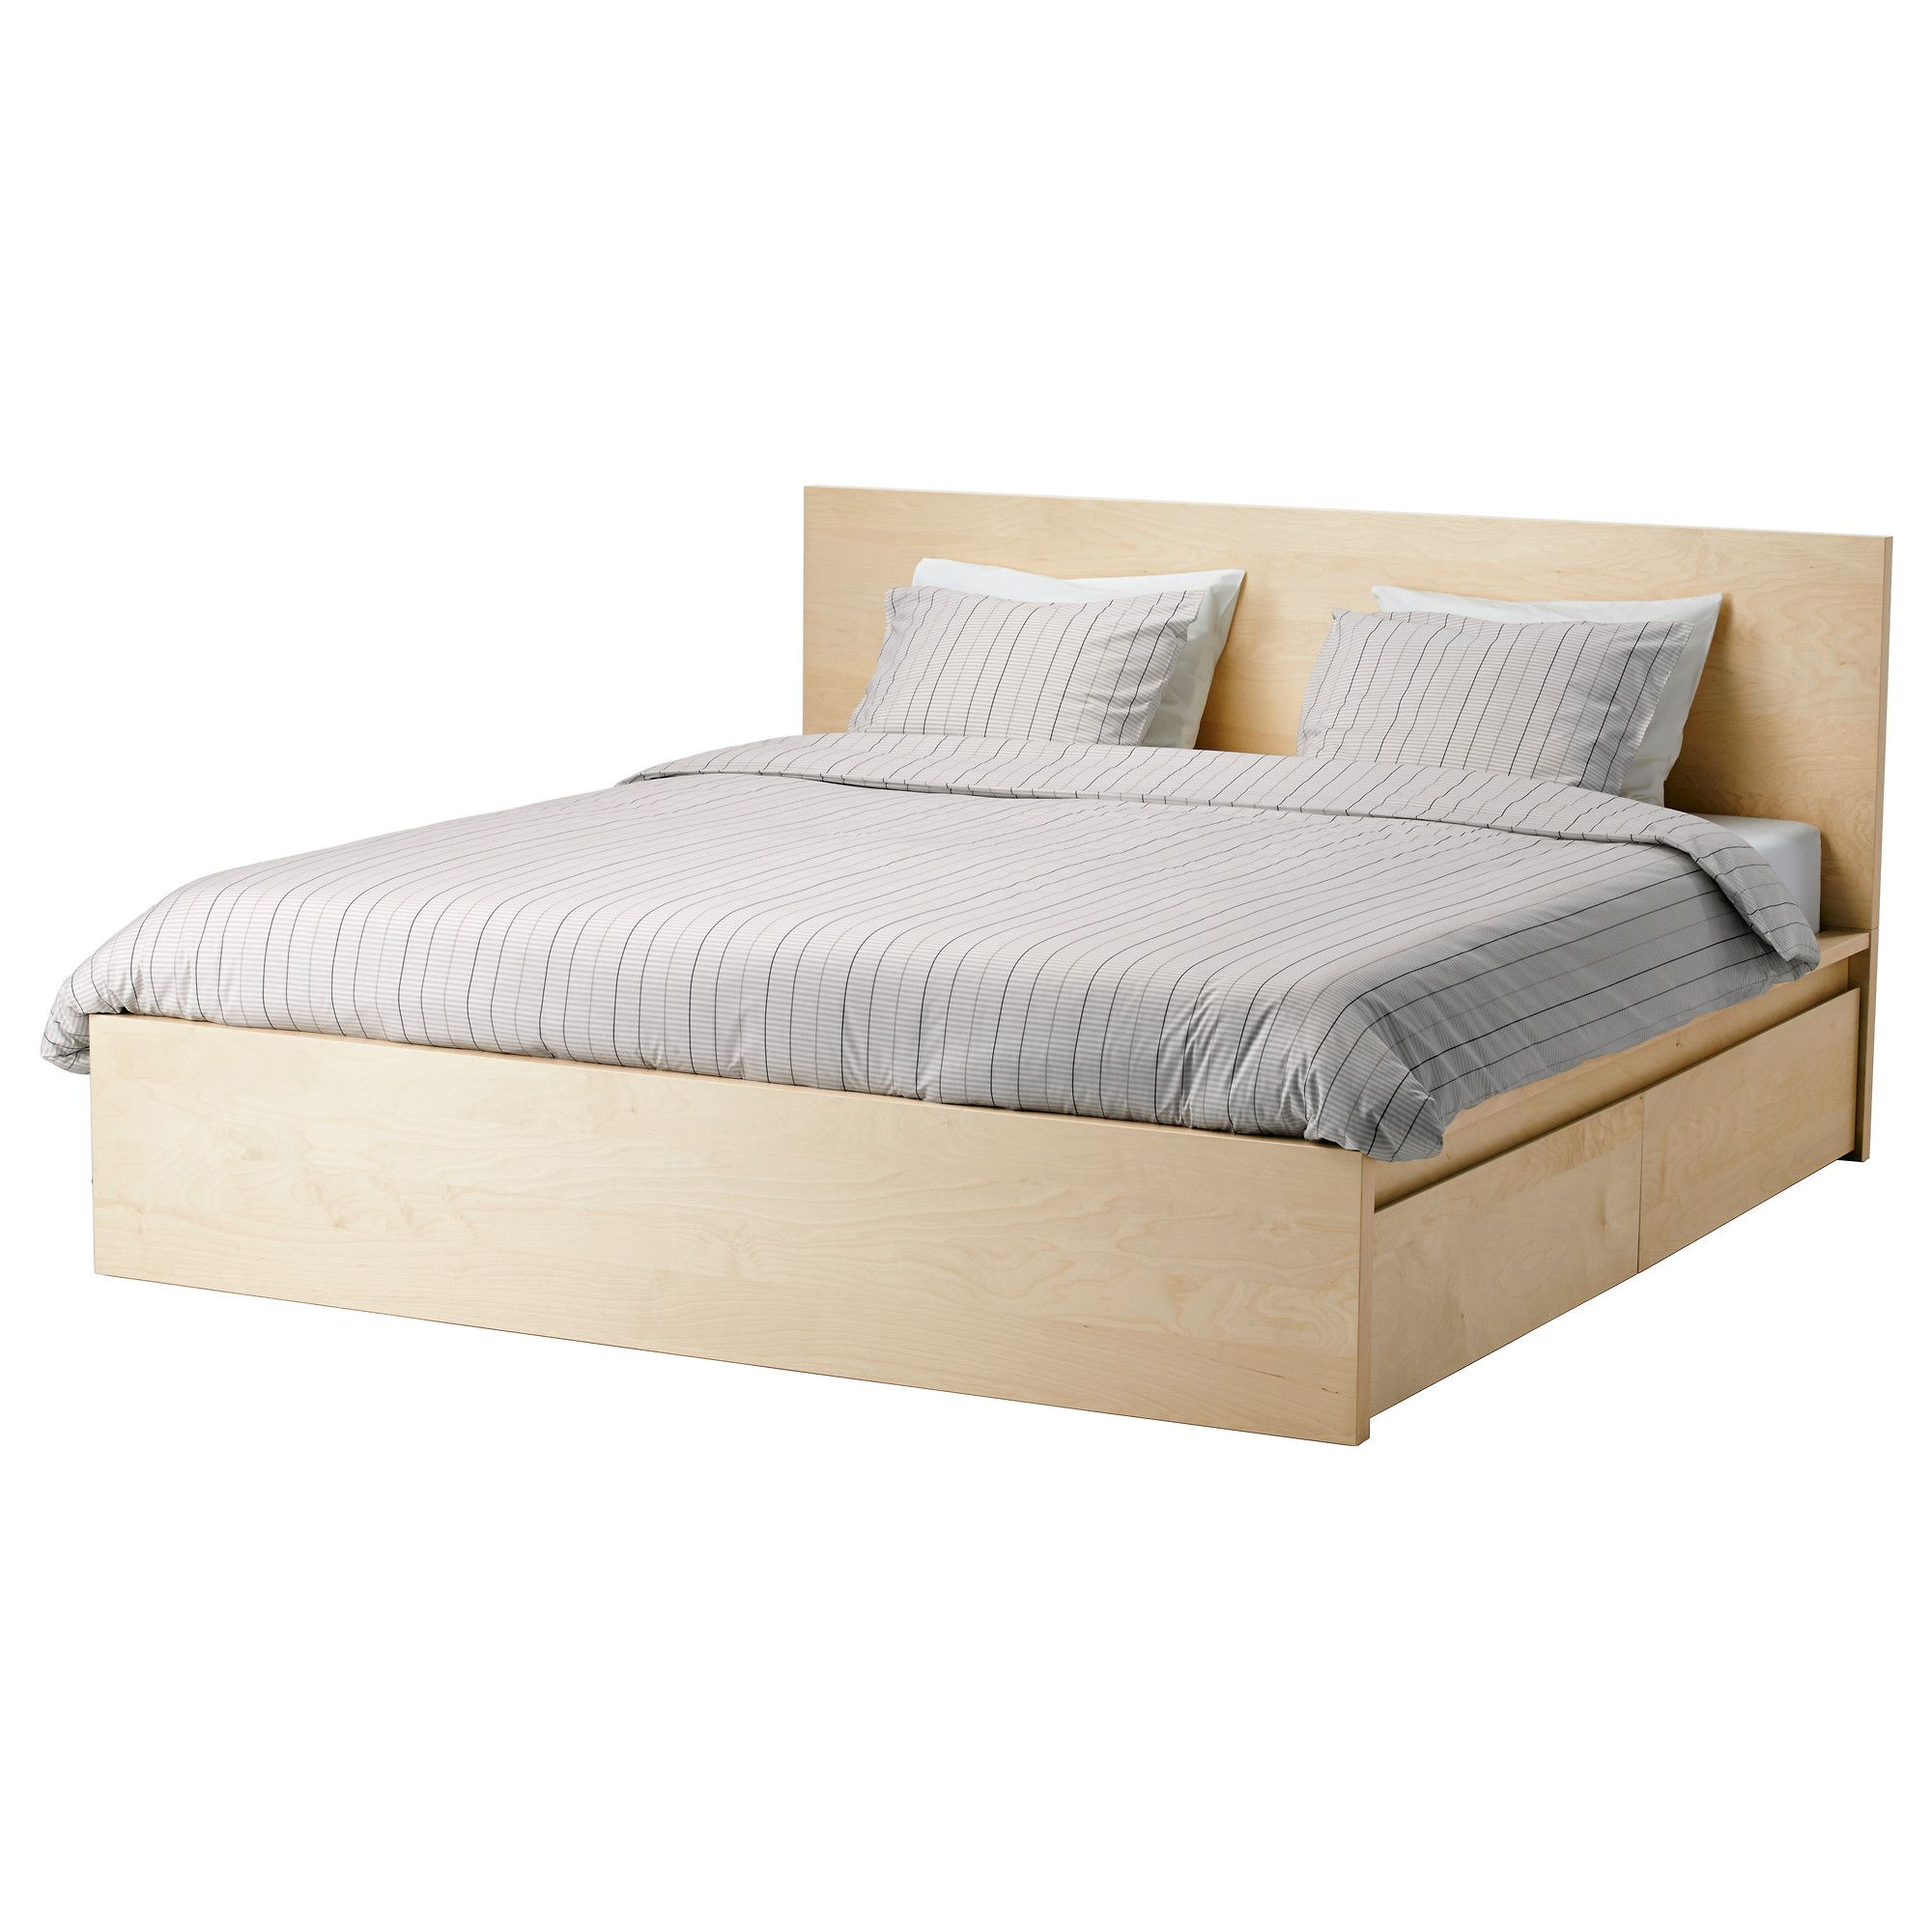 MALM High bed frame 4 storage boxes Queen Luröy IKEA